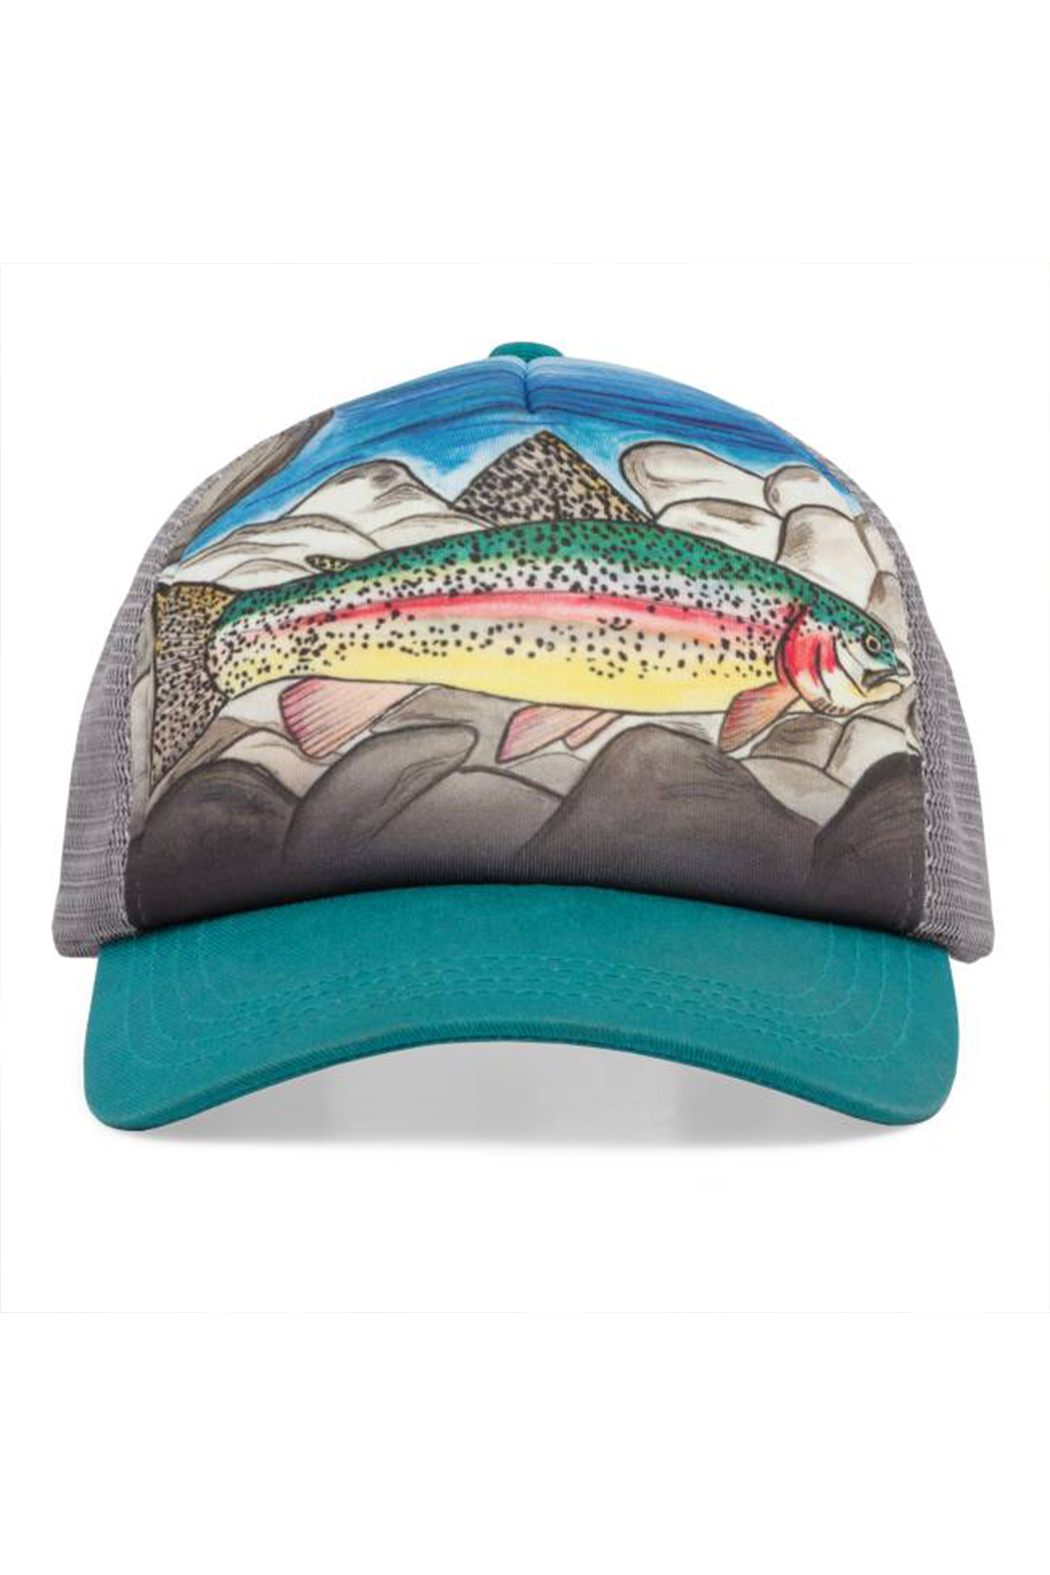 Sunday Afternoons Kids Rainbow Trout Trucker Hat - Main Image